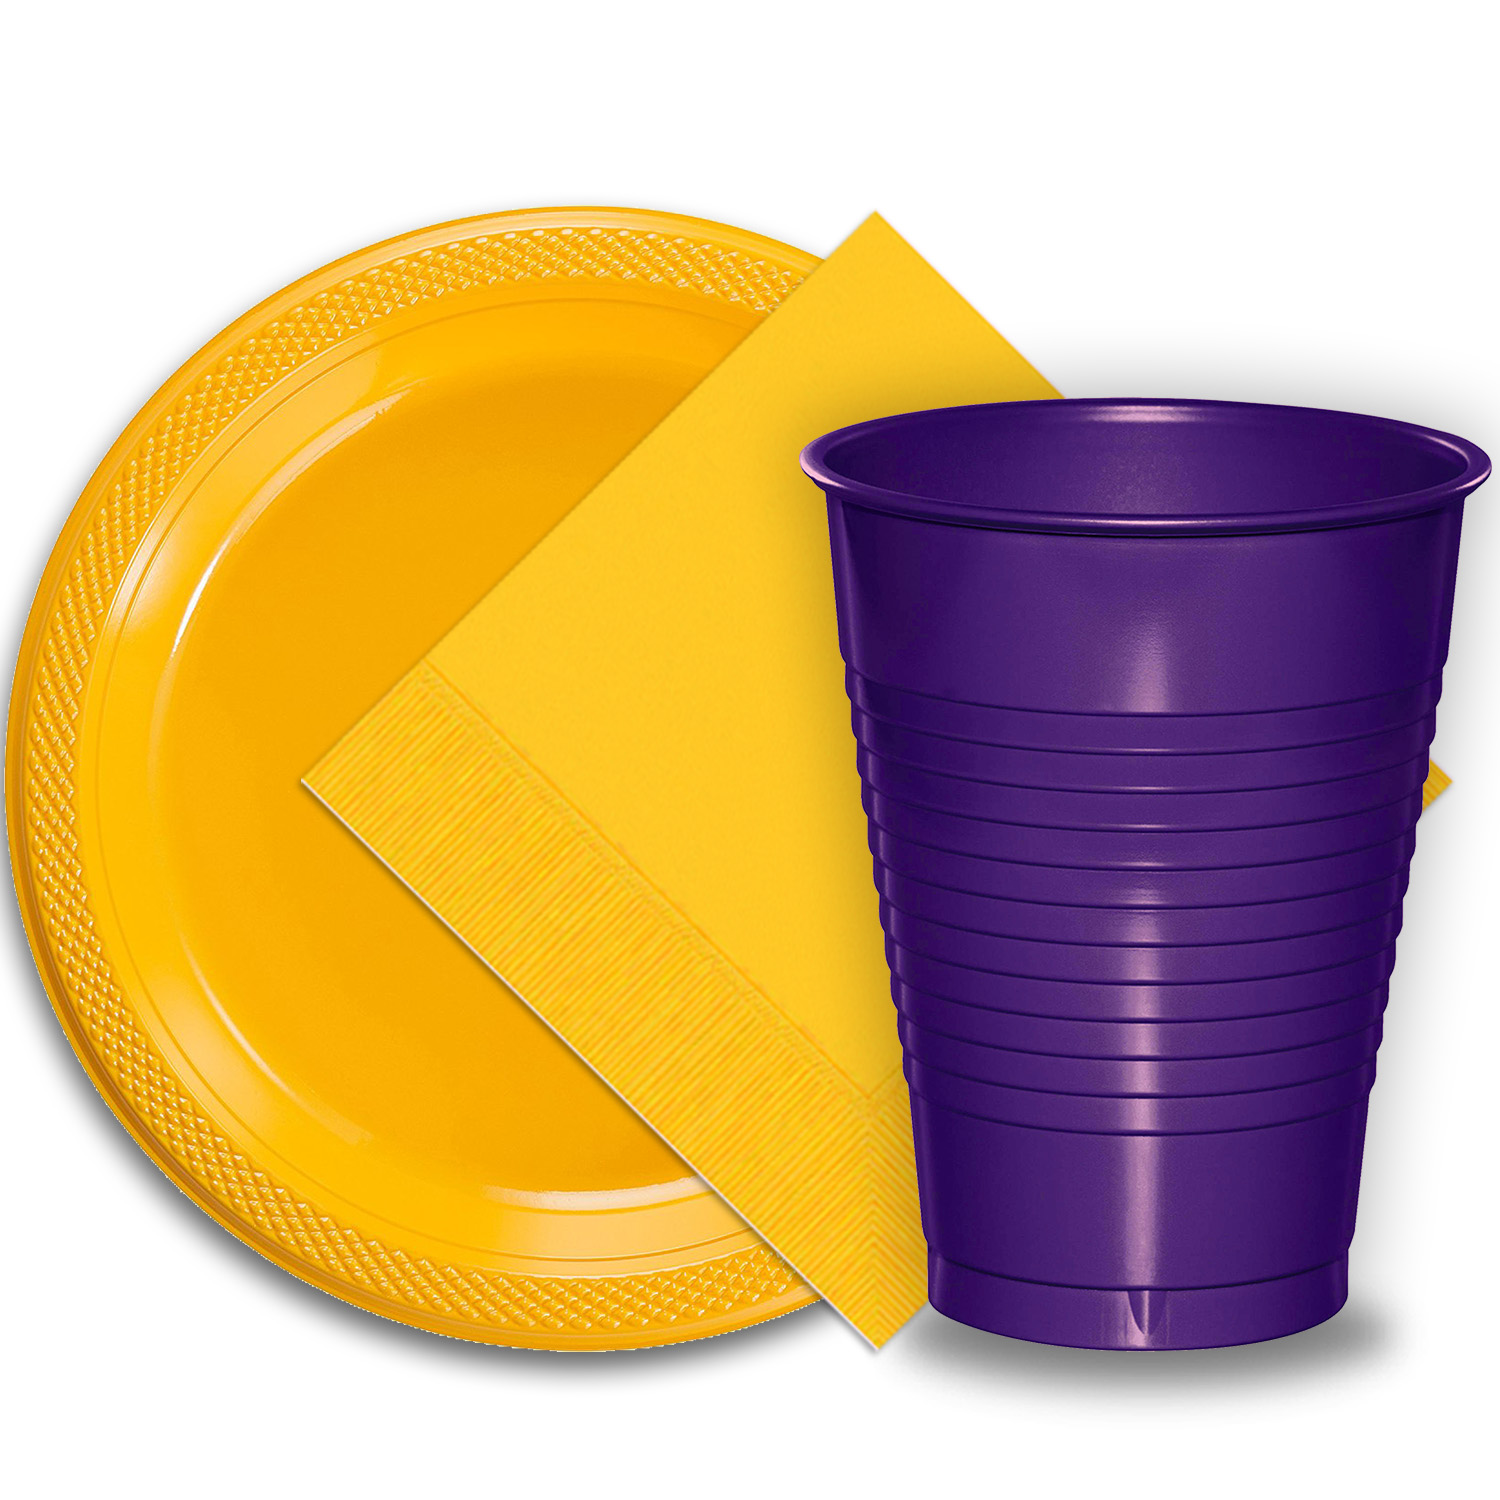 "50 Yellow Plastic Plates (9""), 50 Purple Plastic Cups (12 oz.), and 50 Yellow Paper Napkins, Dazzelling Colored Disposable Party Supplies Tableware Set for Fifty Guests."